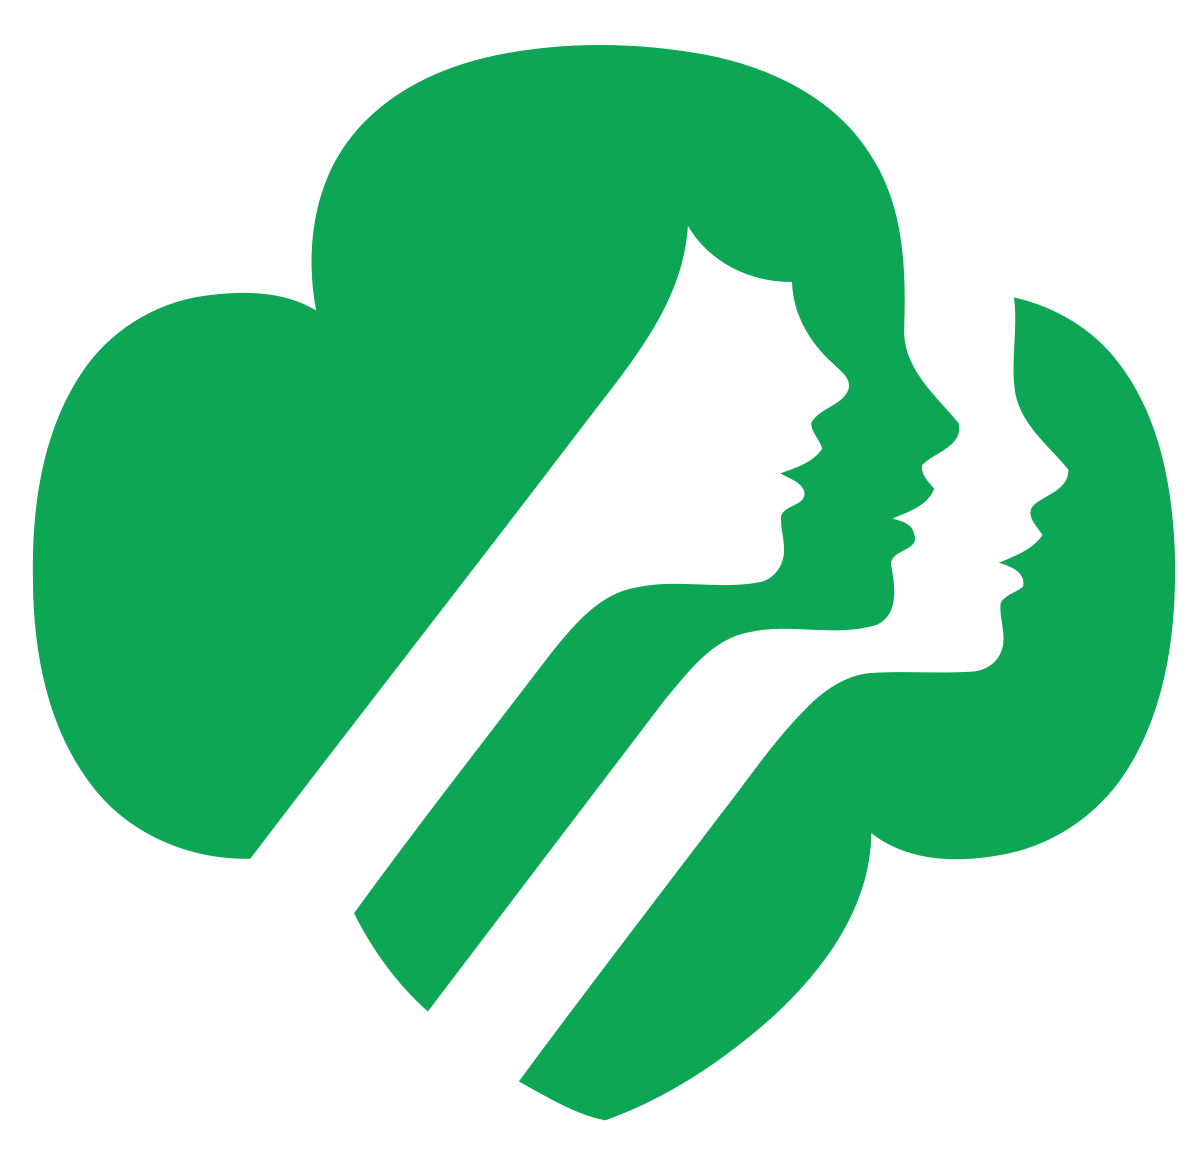 Fundraiser clipart money problem. Girl scouts of the